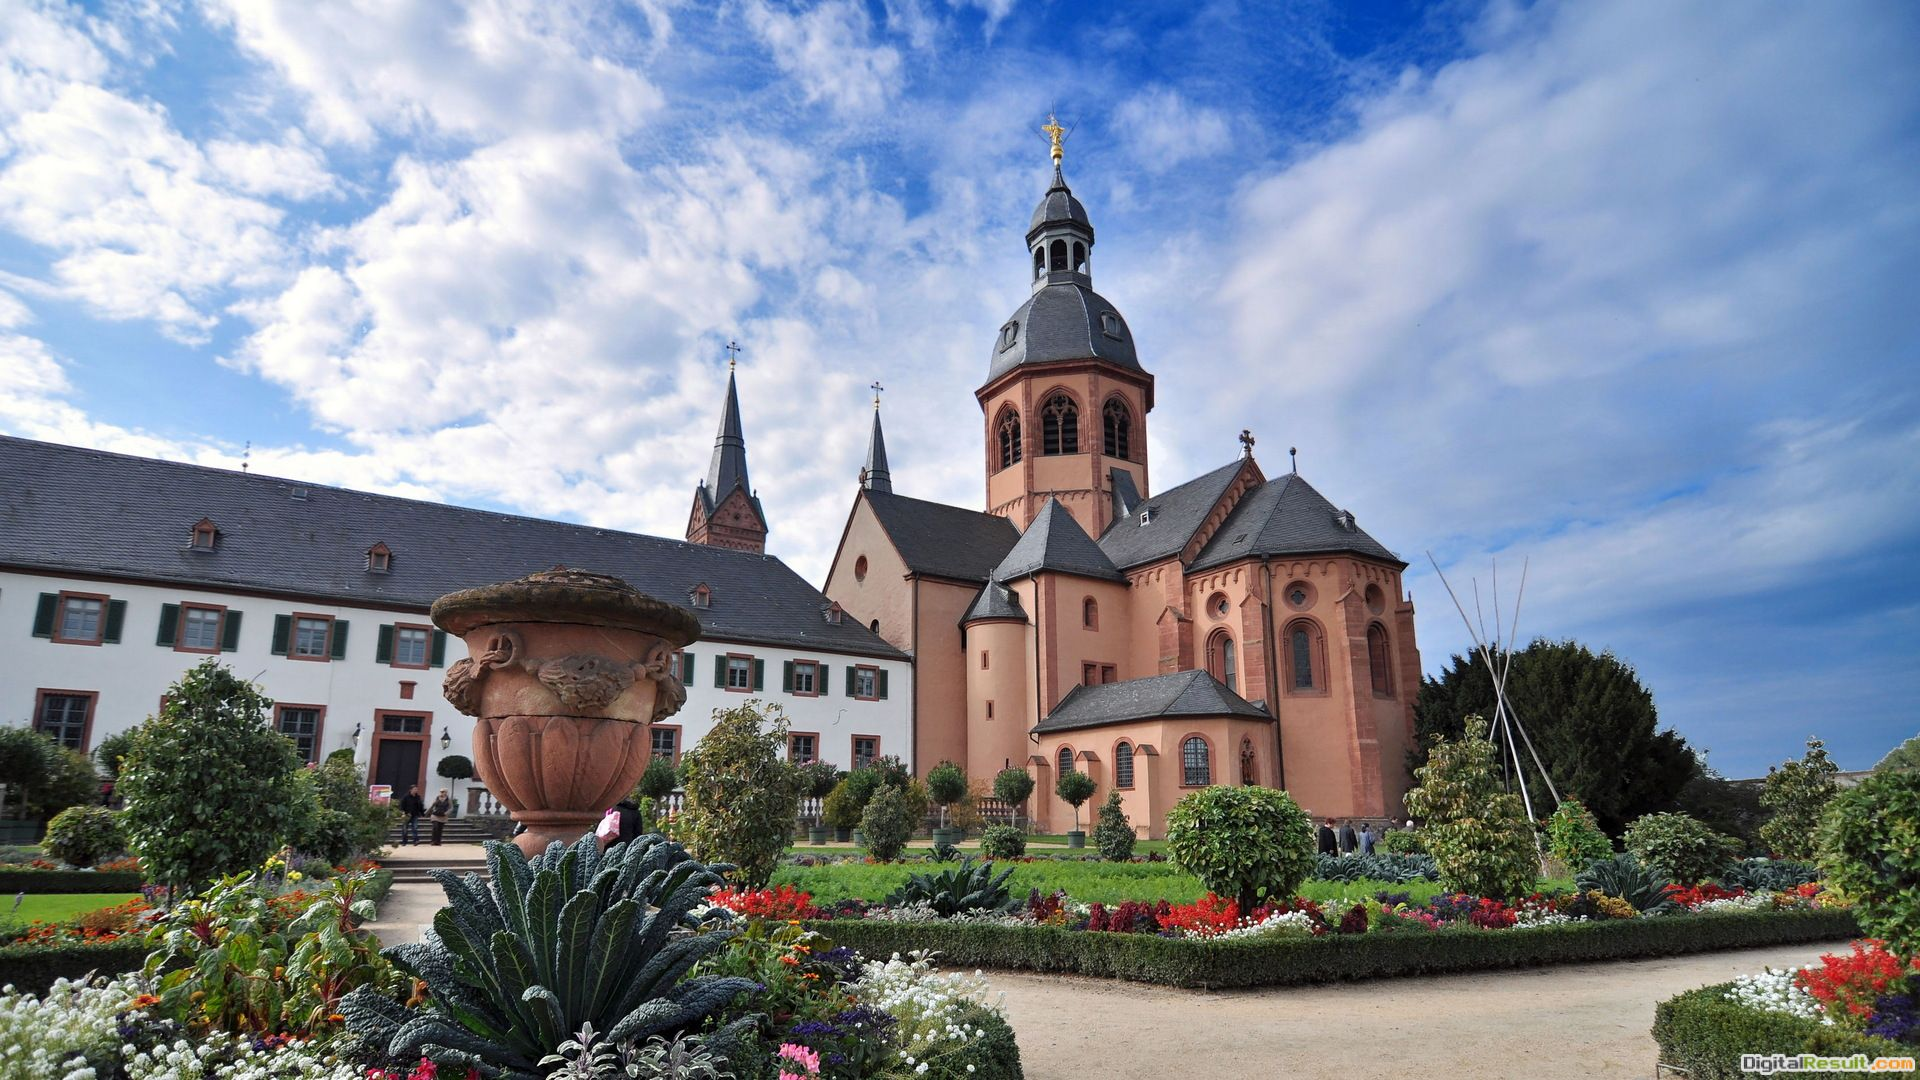 Beautiful church in seligenstadt germany HD Wallpaper 372